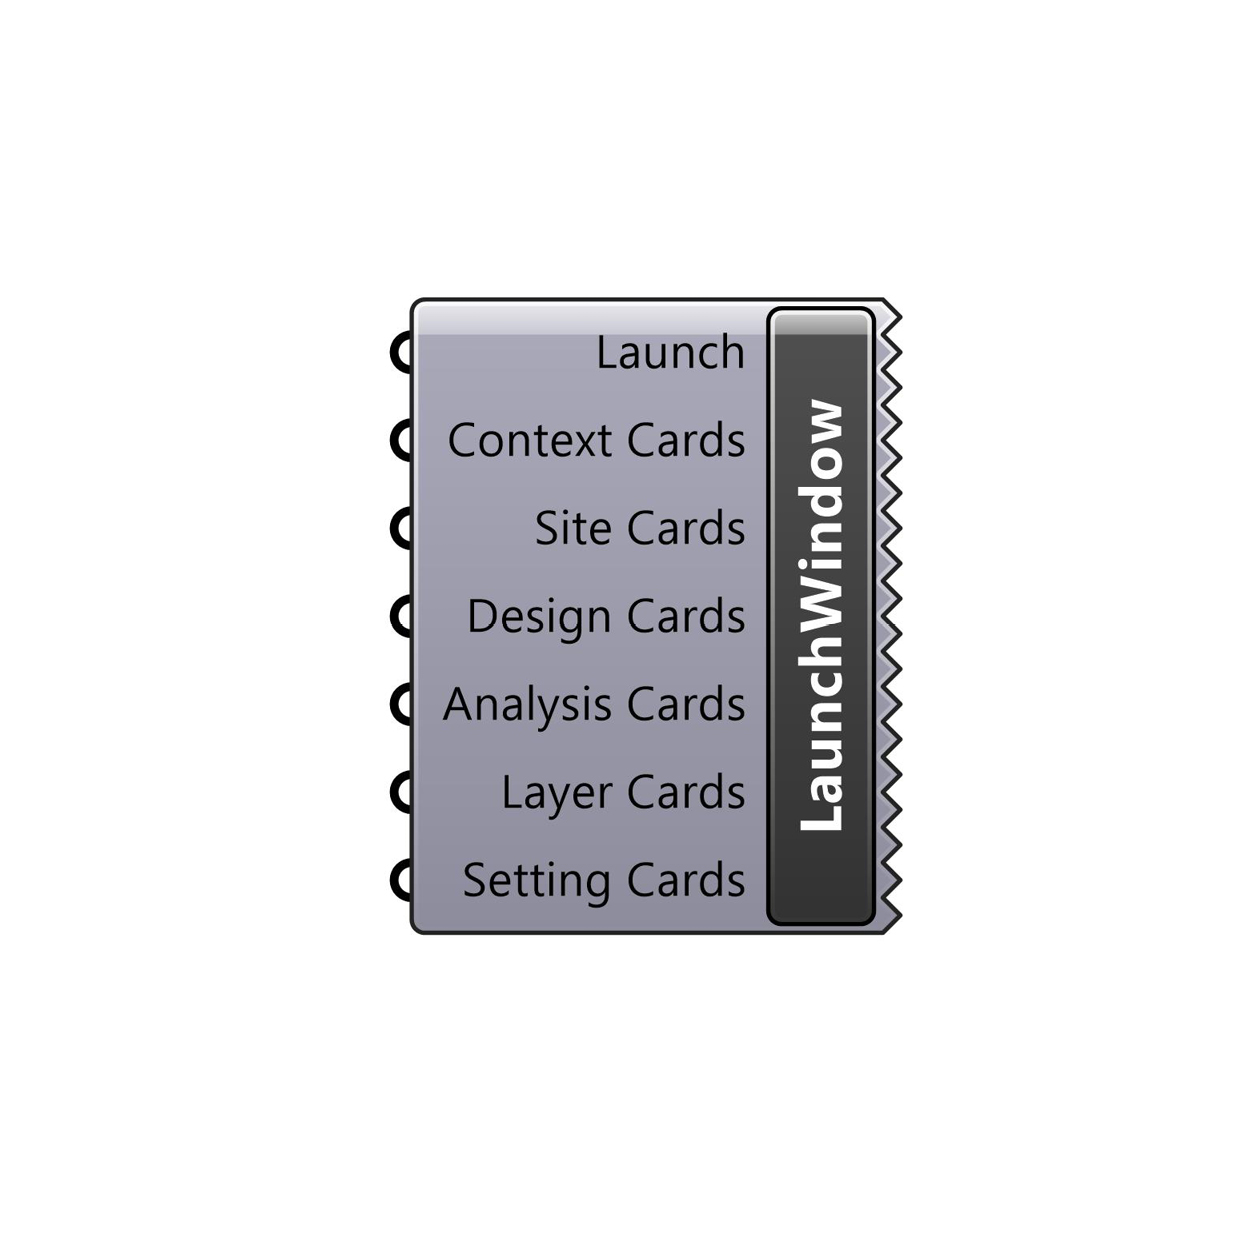 Launch Window component